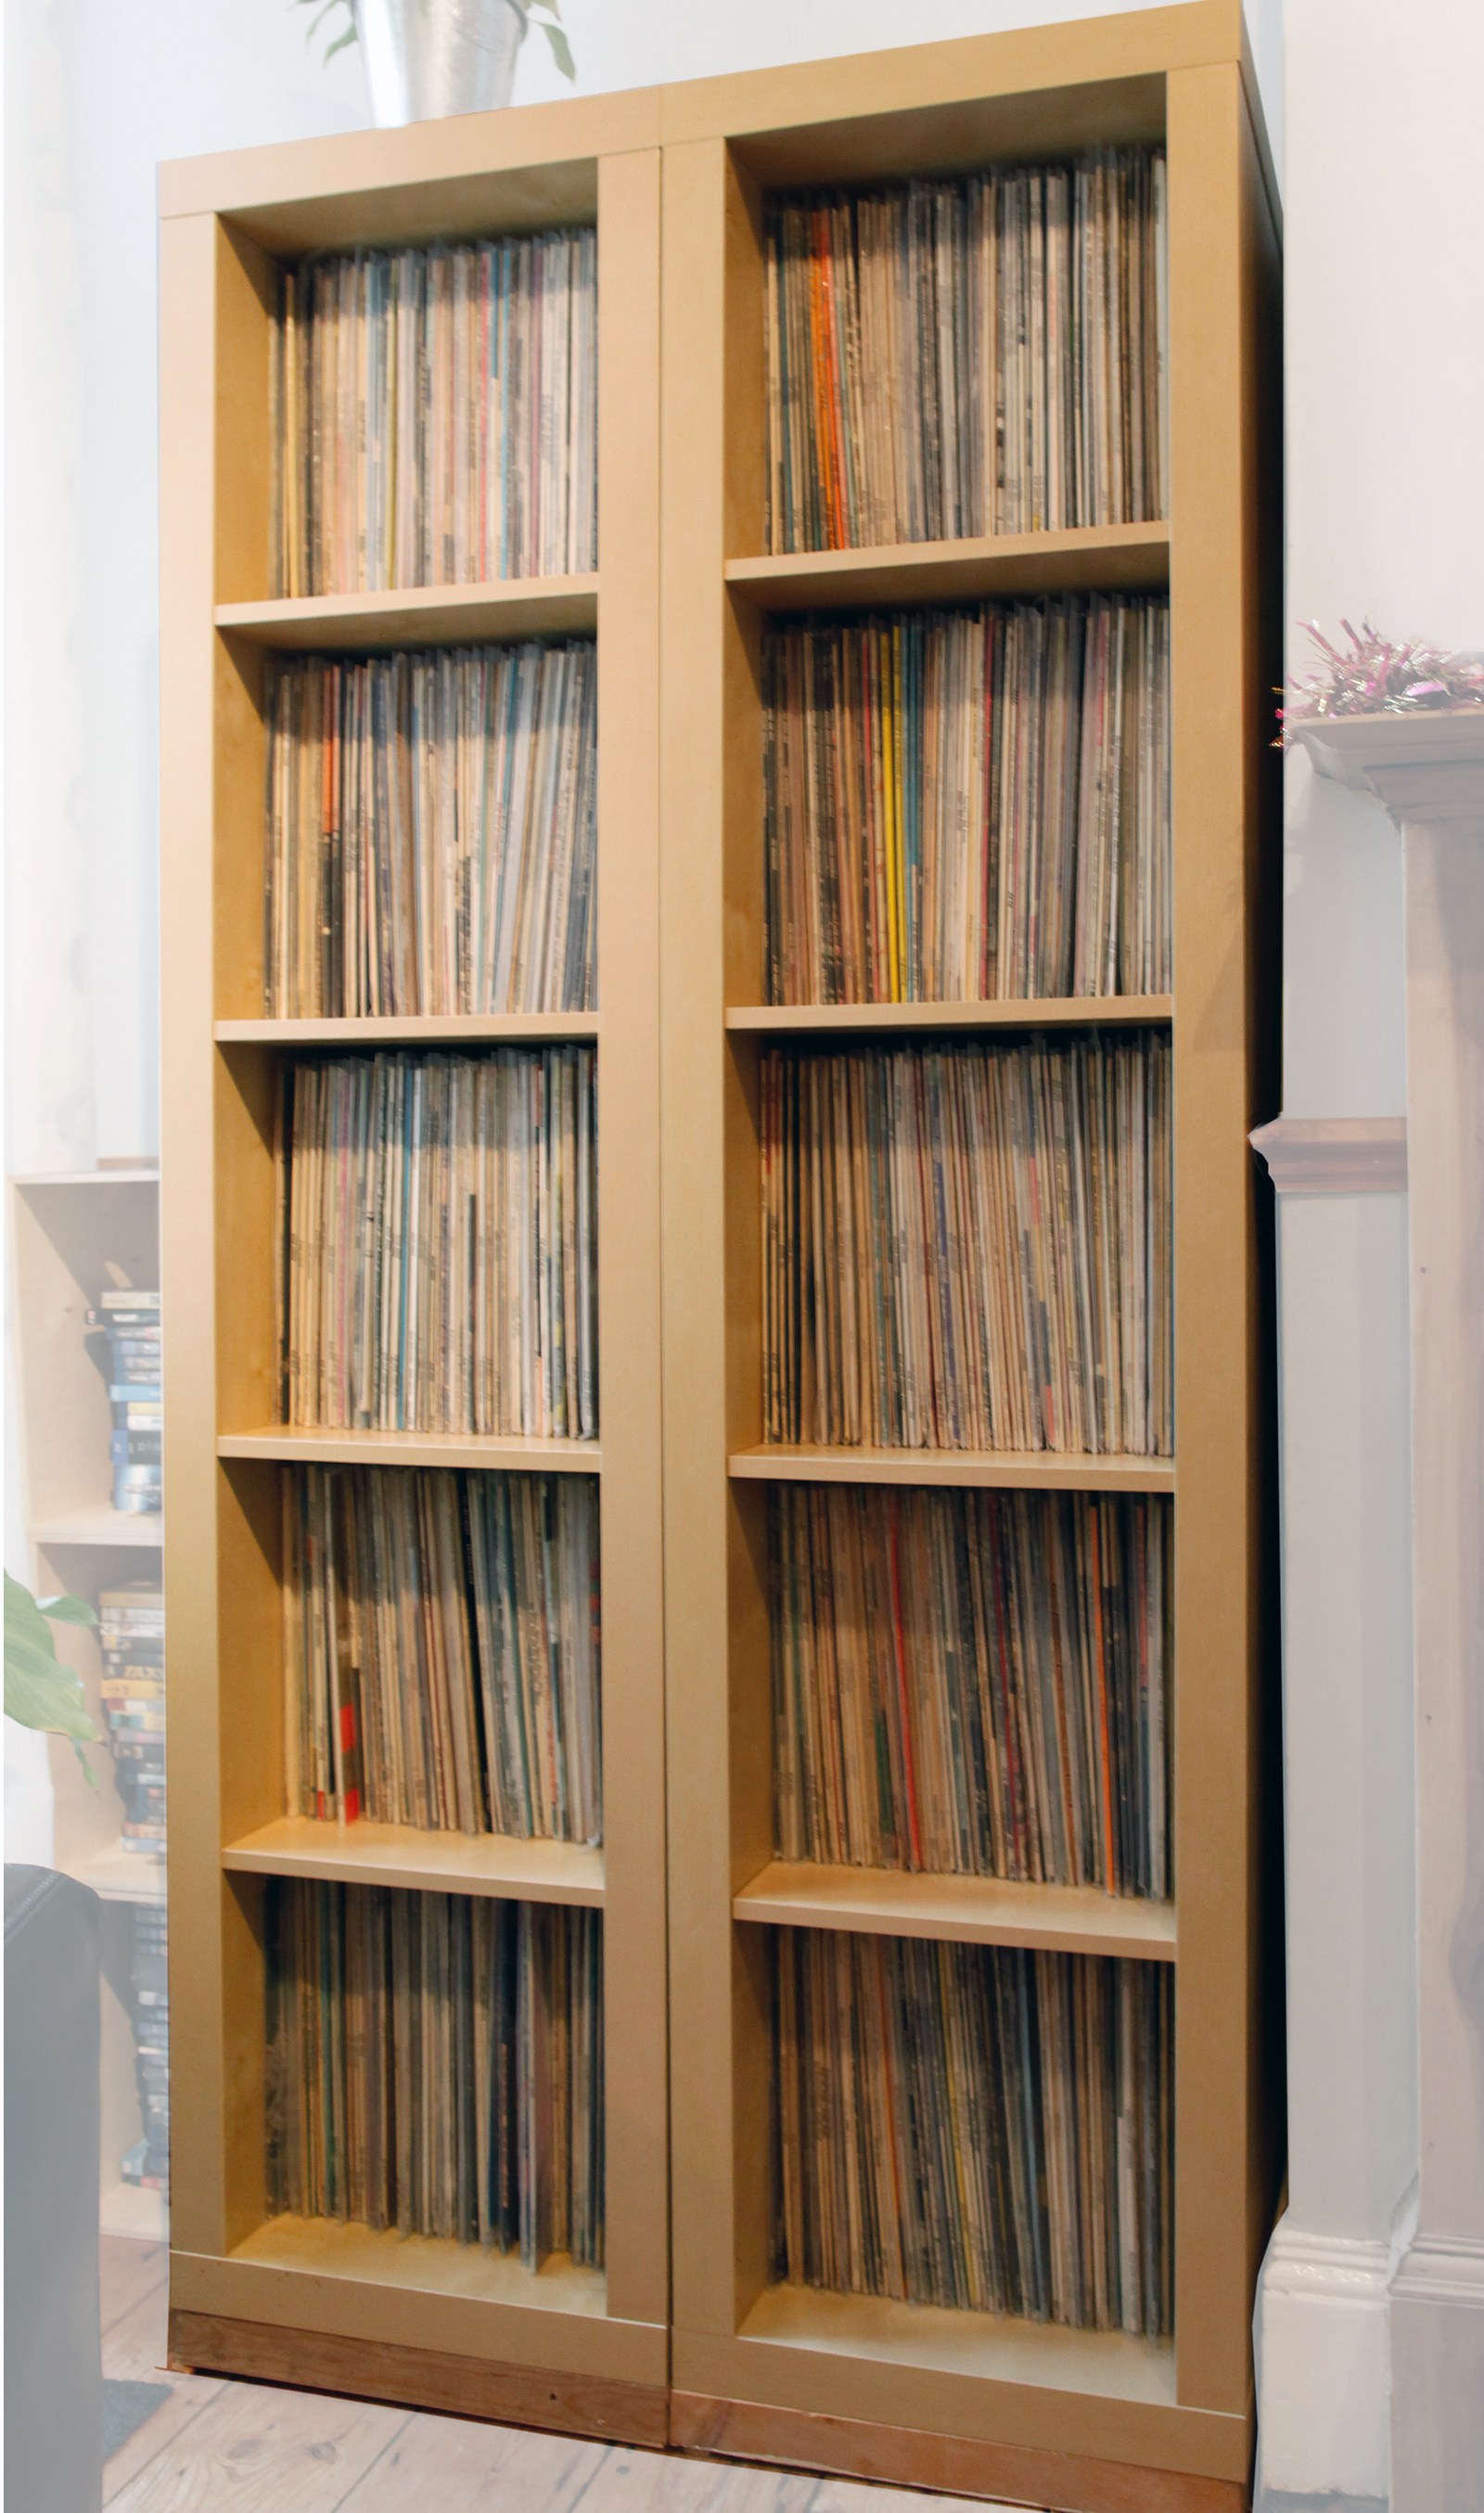 Ikea vinyl record storage 28 images kallax for Ikea kallax records